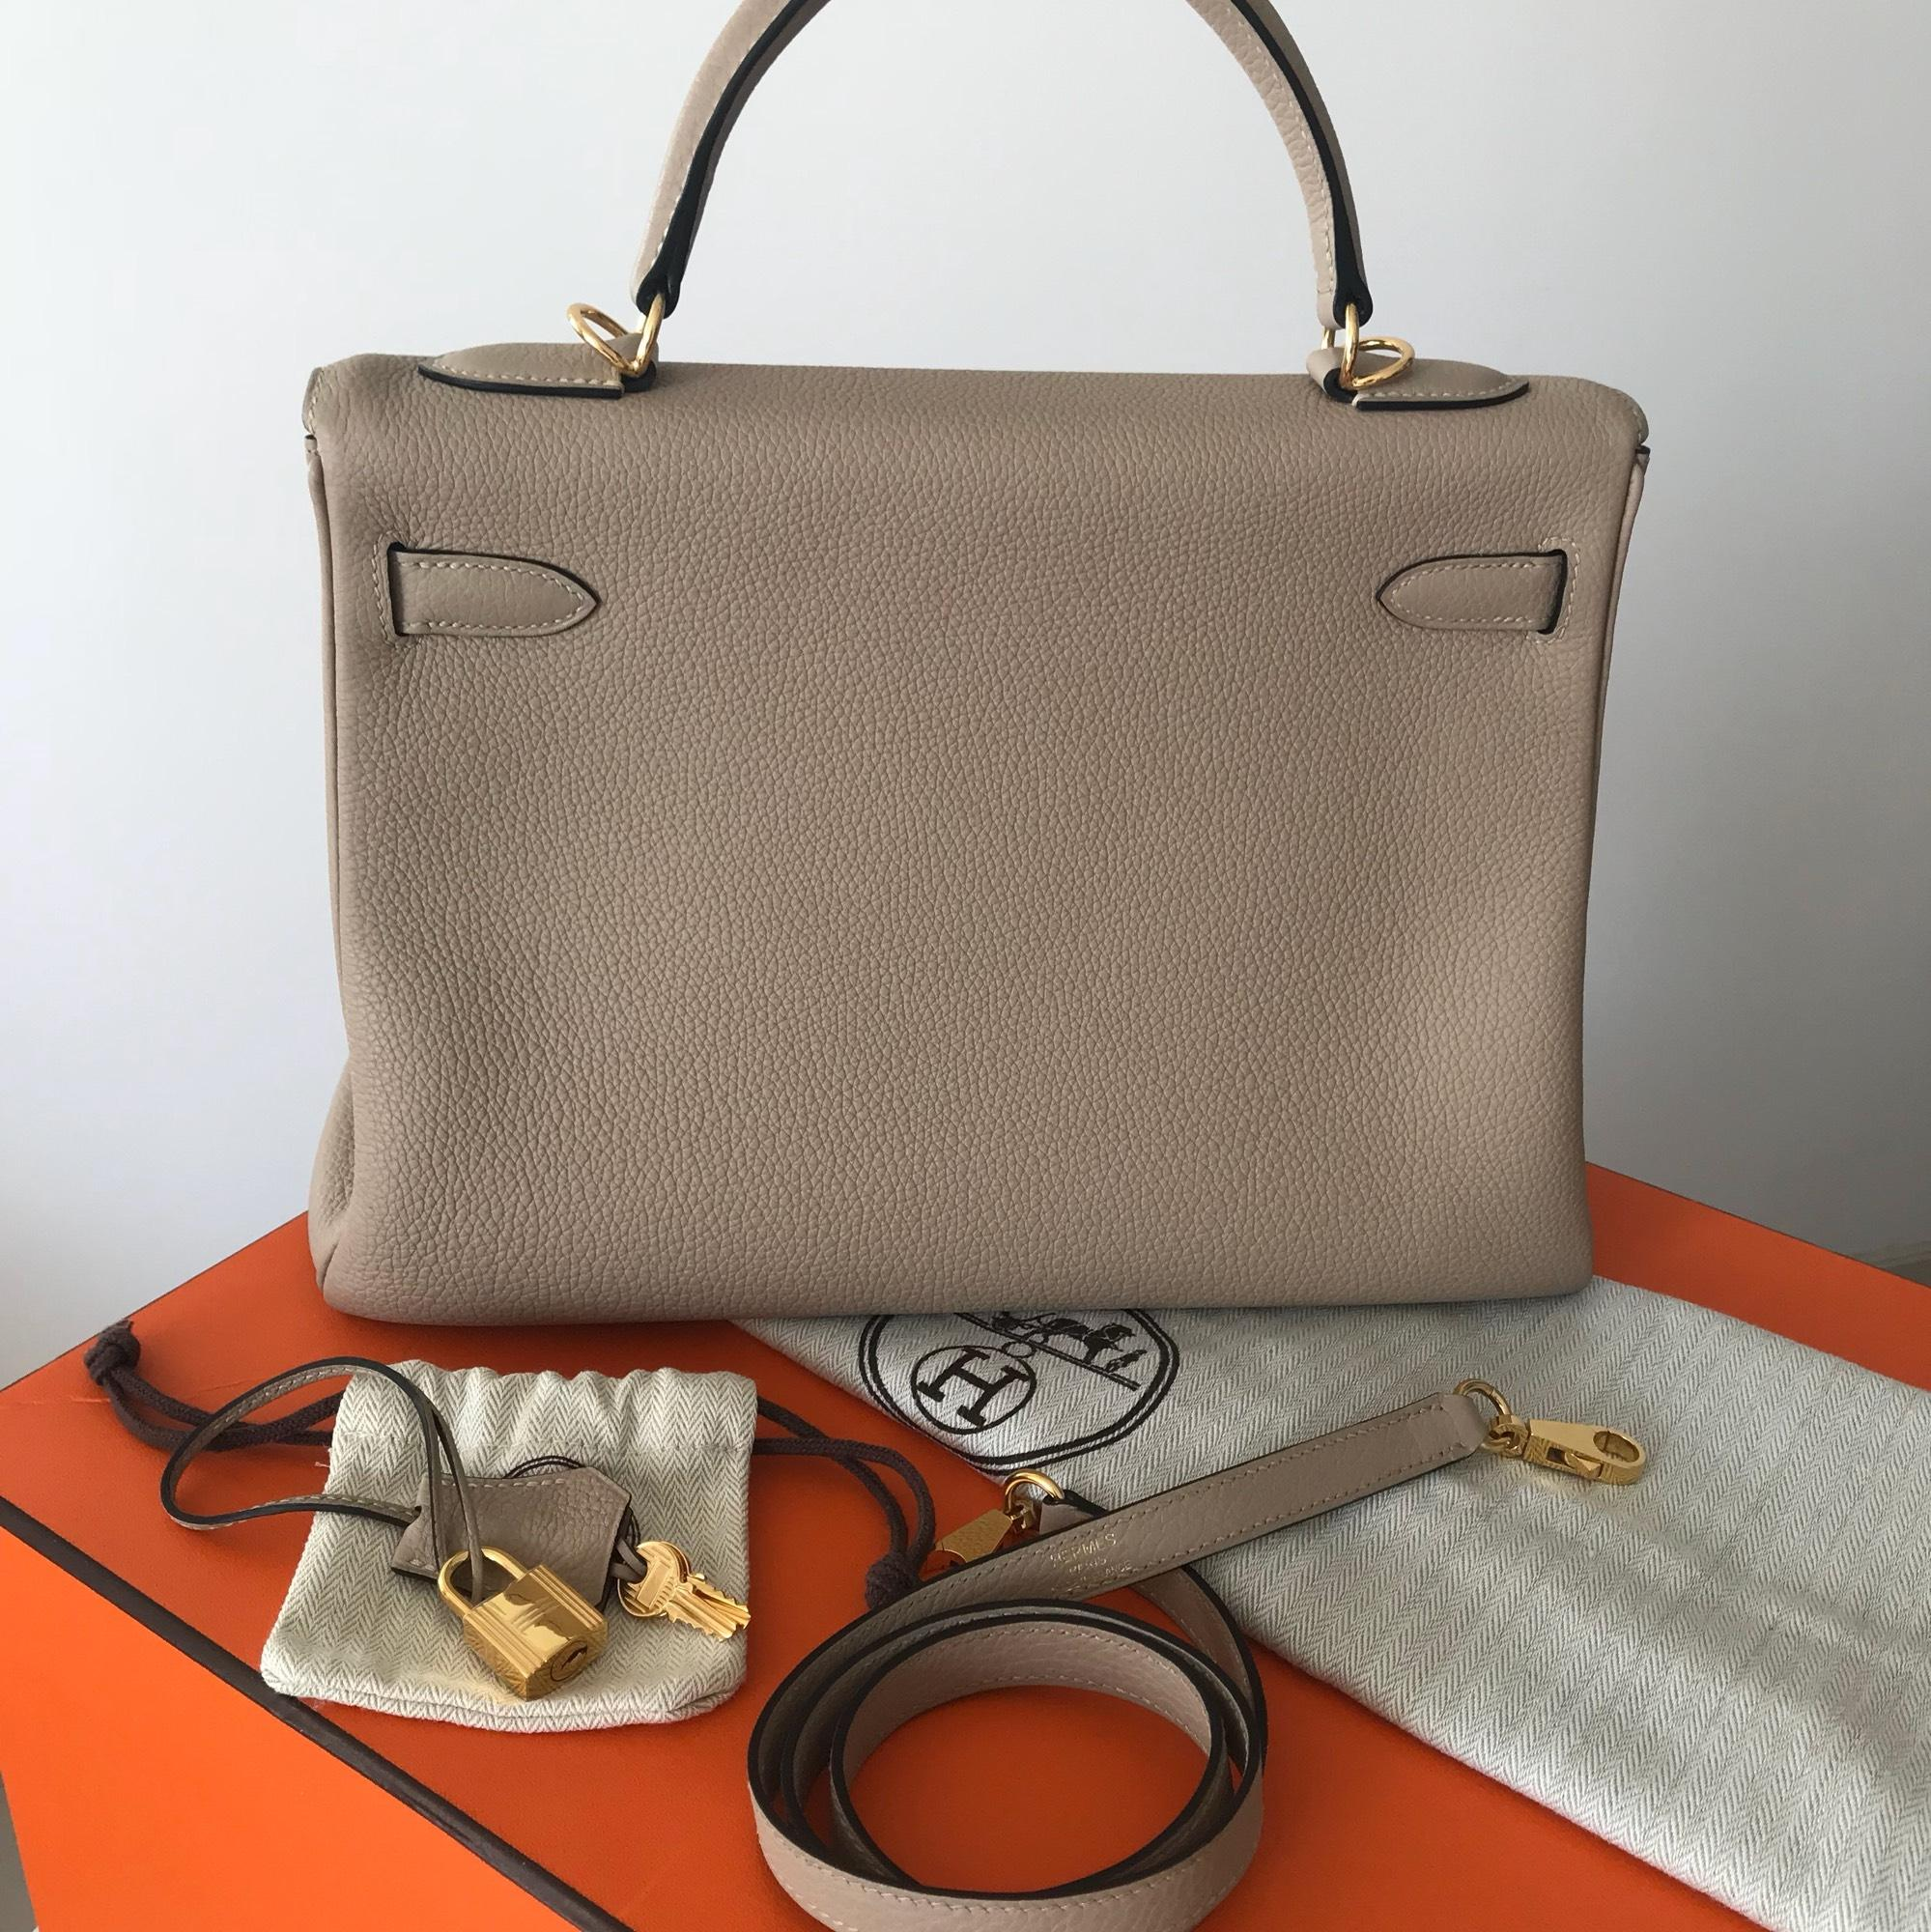 f0da8e05f0ced ... new style hermès kelly 32 gold hw gris tourterelle togo leather  shoulder bag tradesy e2163 cd398